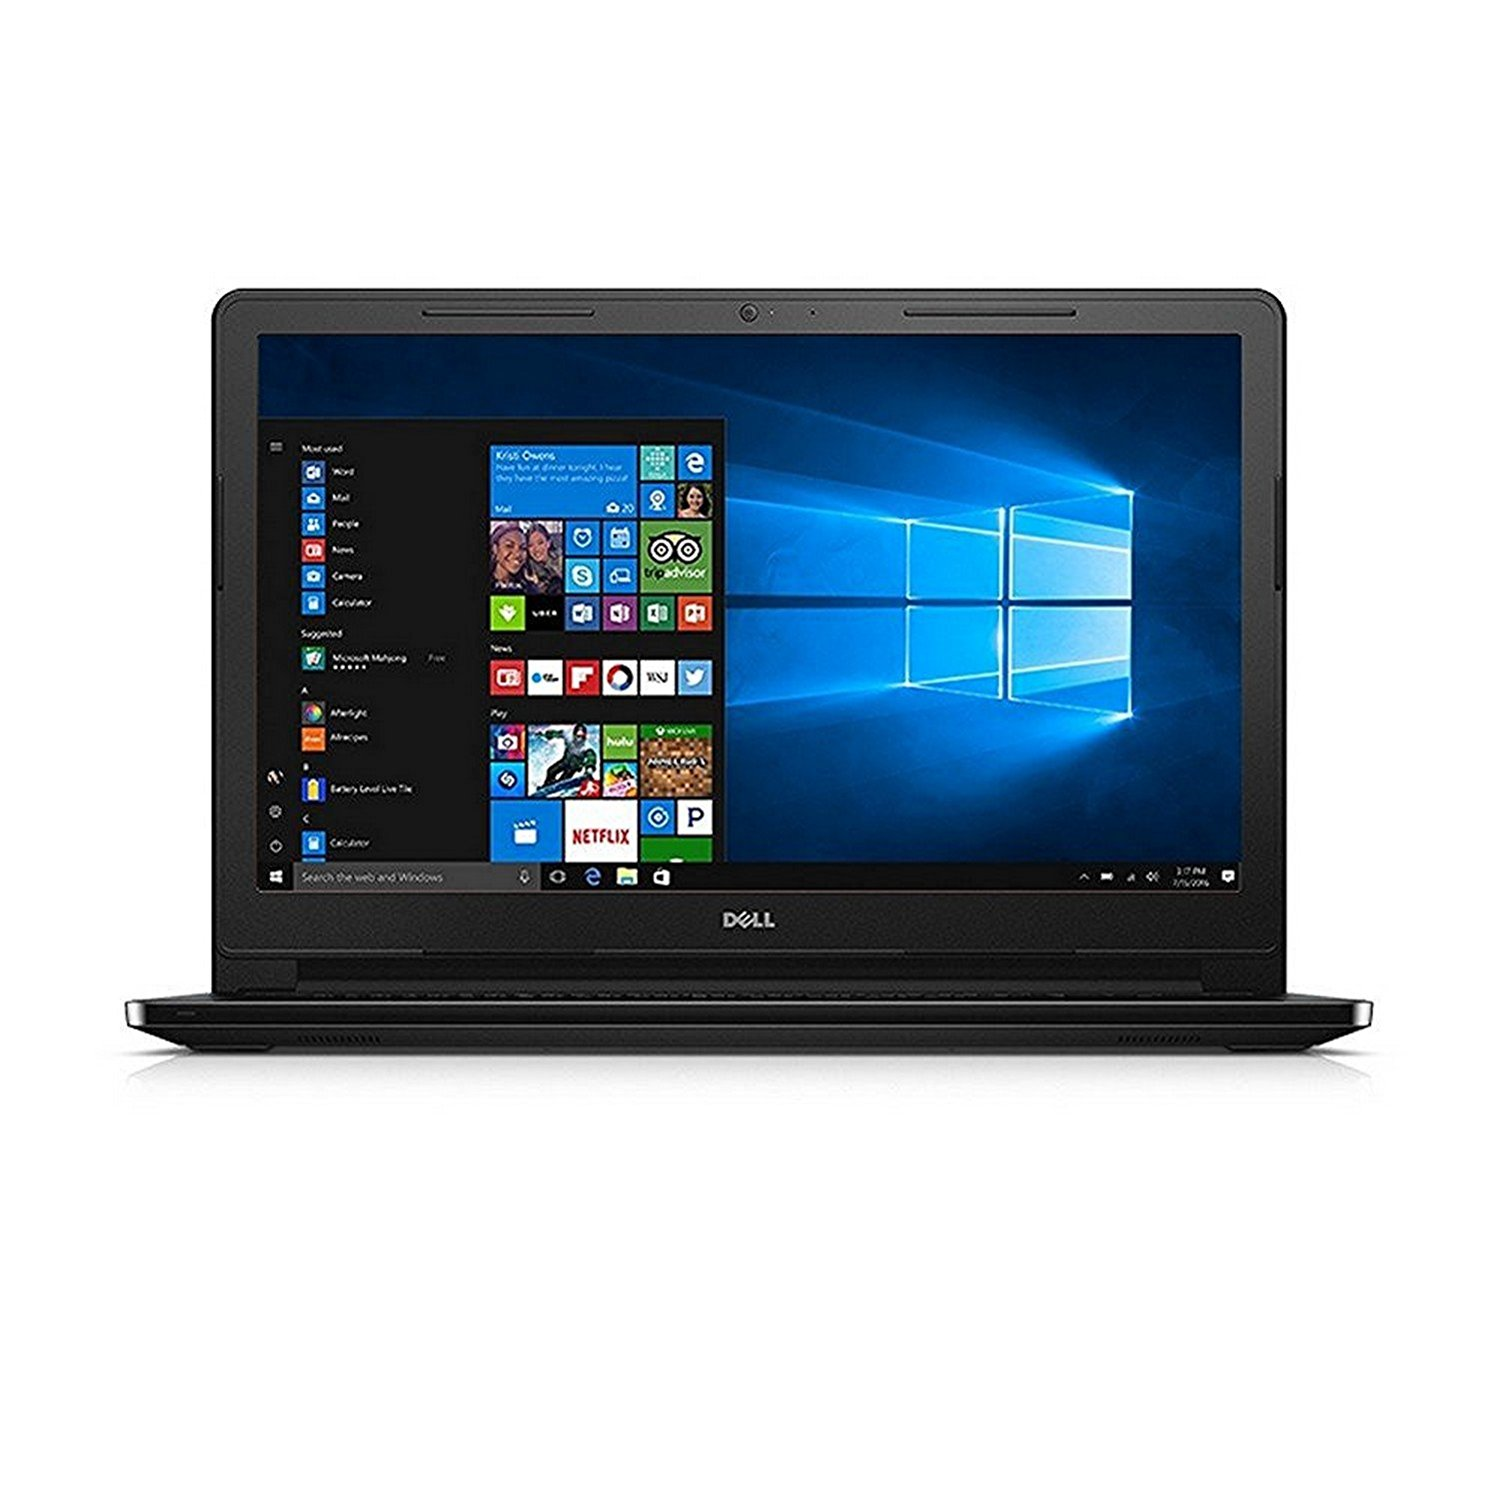 Dell Inspiron 15 3558 15.6-inch Laptop